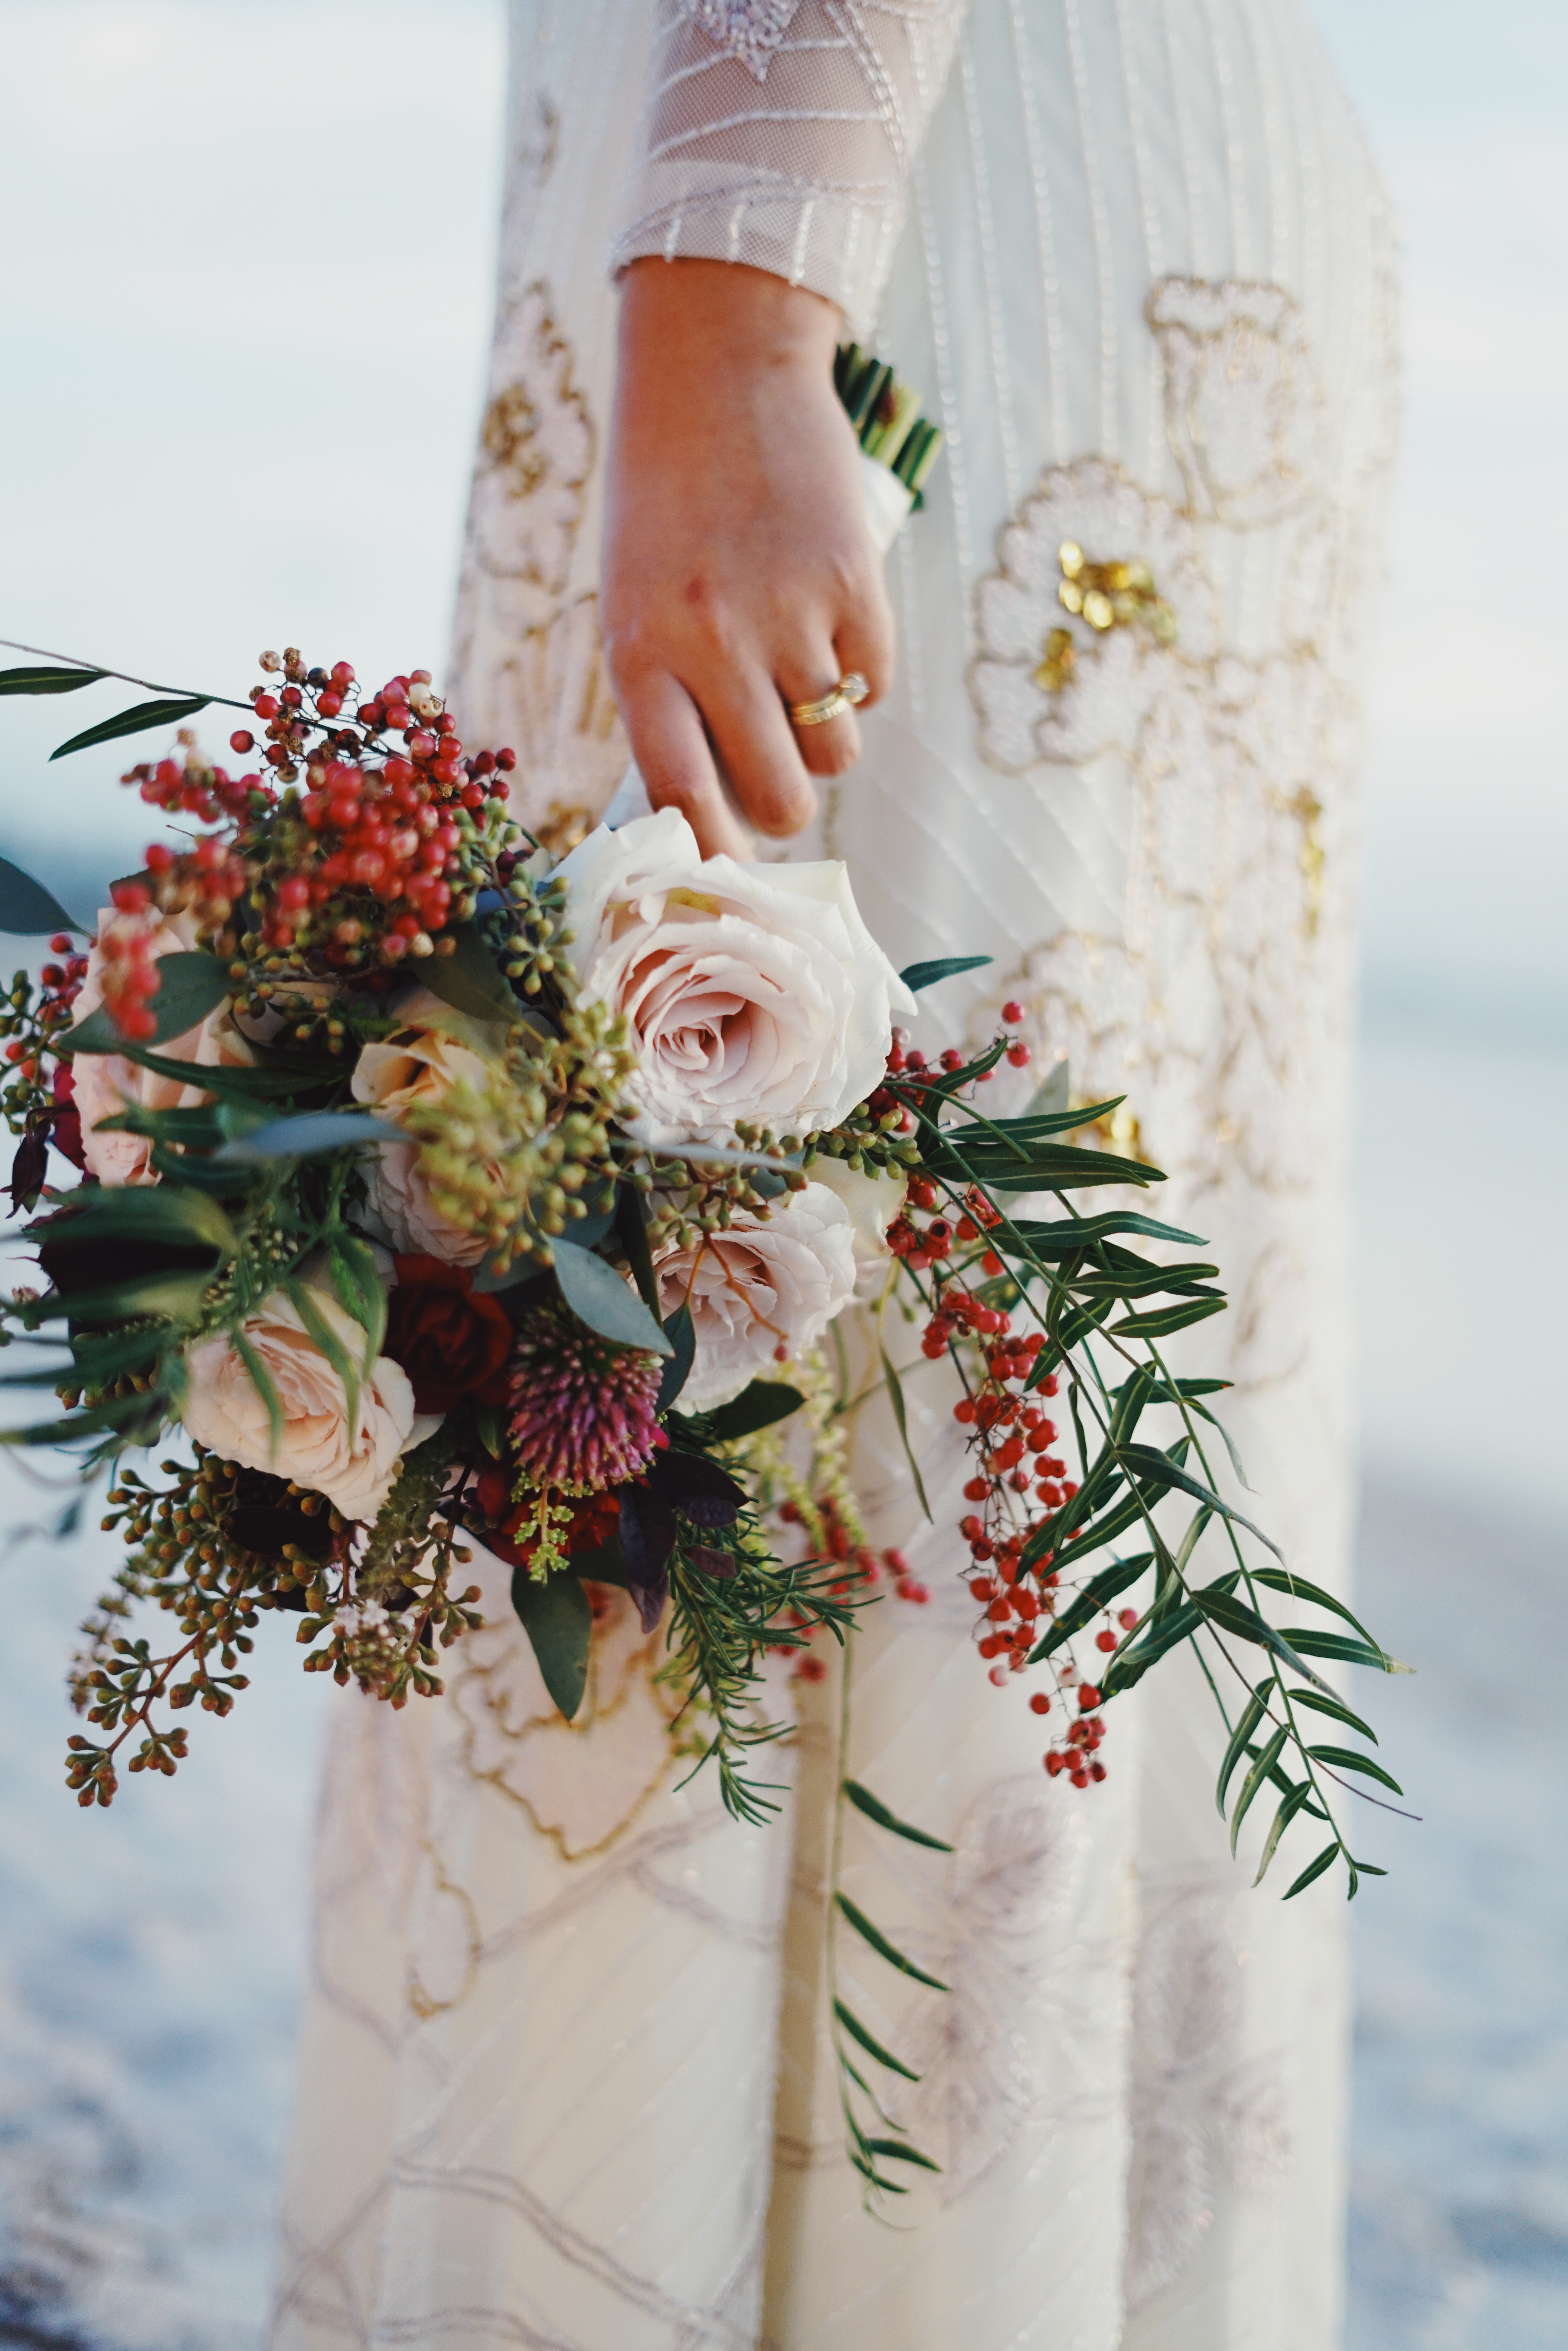 Free photo: Woman Holding Bouquet of Flowers - marriage, ring, love ...